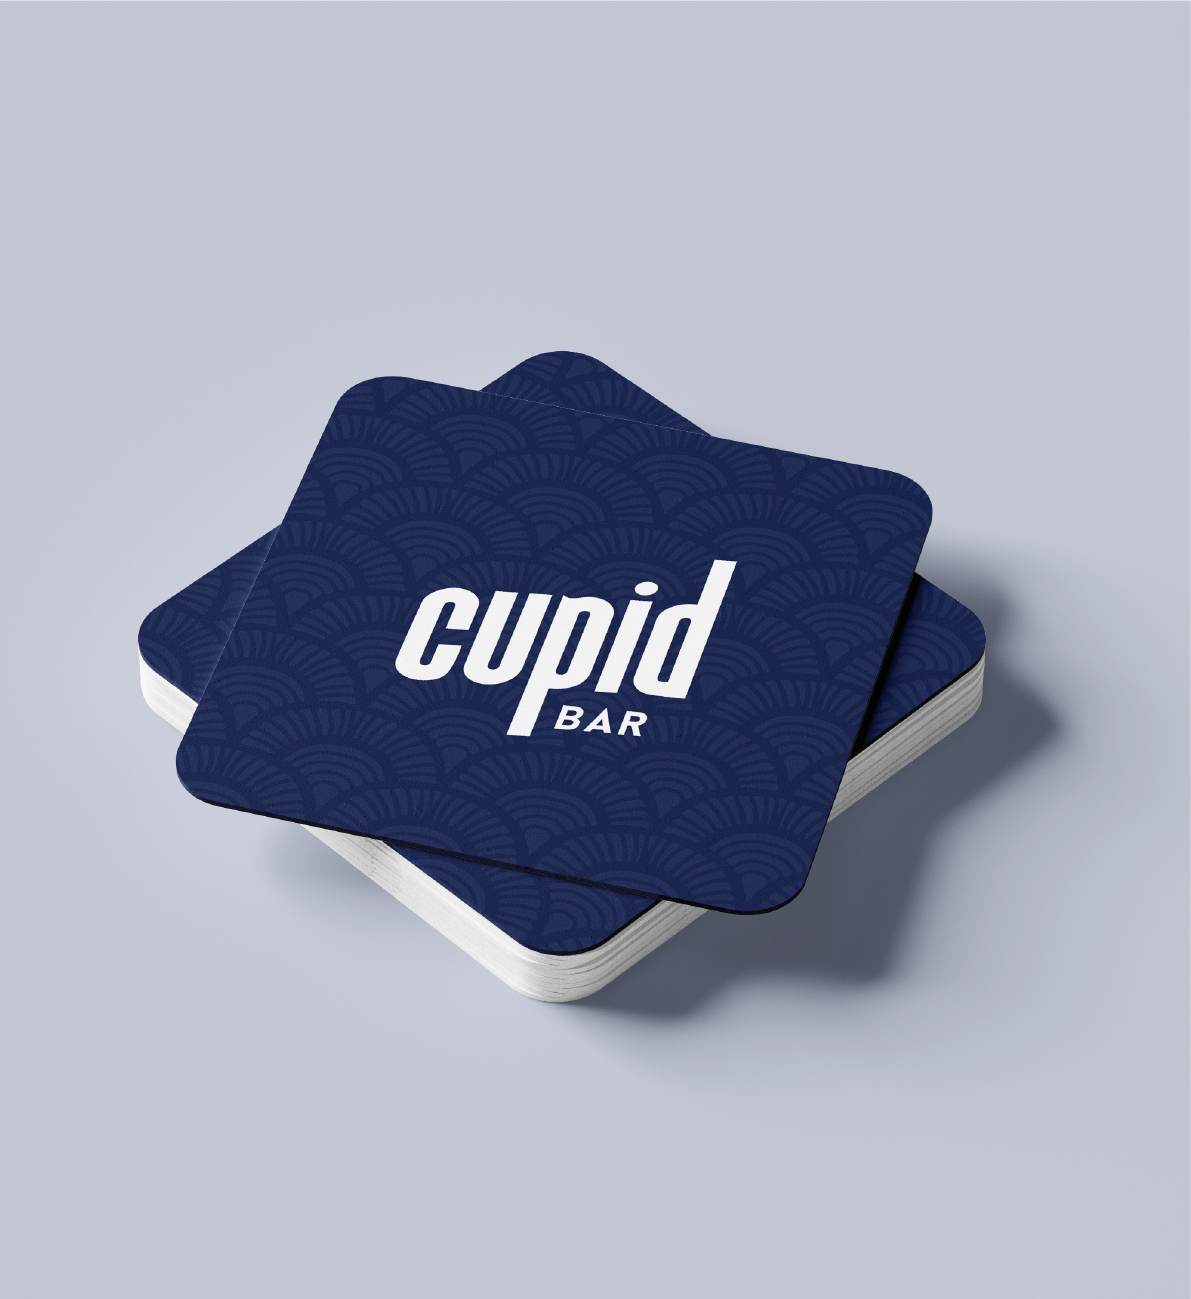 0001 Cupid_case study-new-13.png